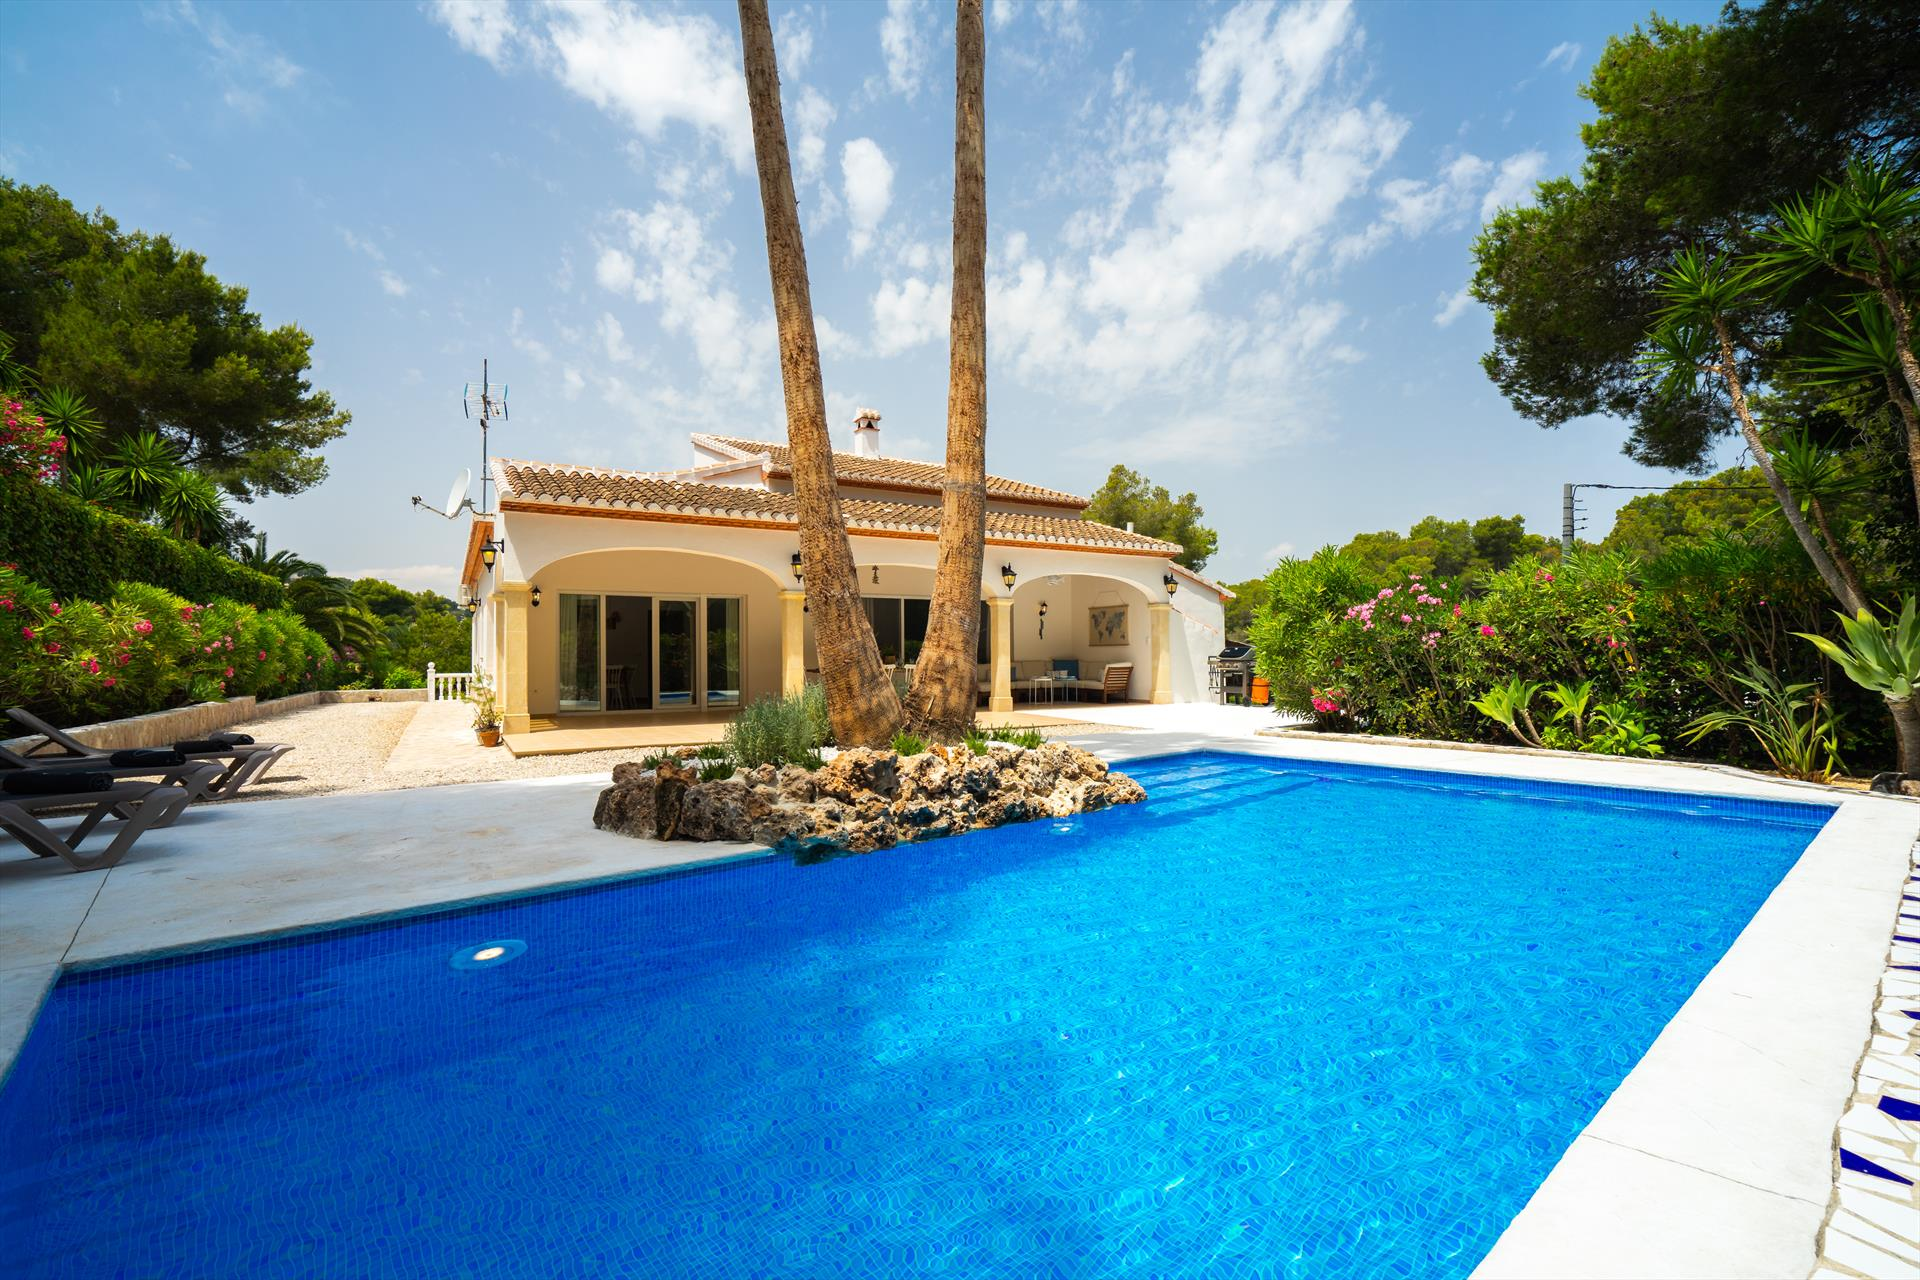 Alma 6 pax, Beautiful and comfortable villa in Javea, on the Costa Blanca, Spain  with private pool for 6 persons.....